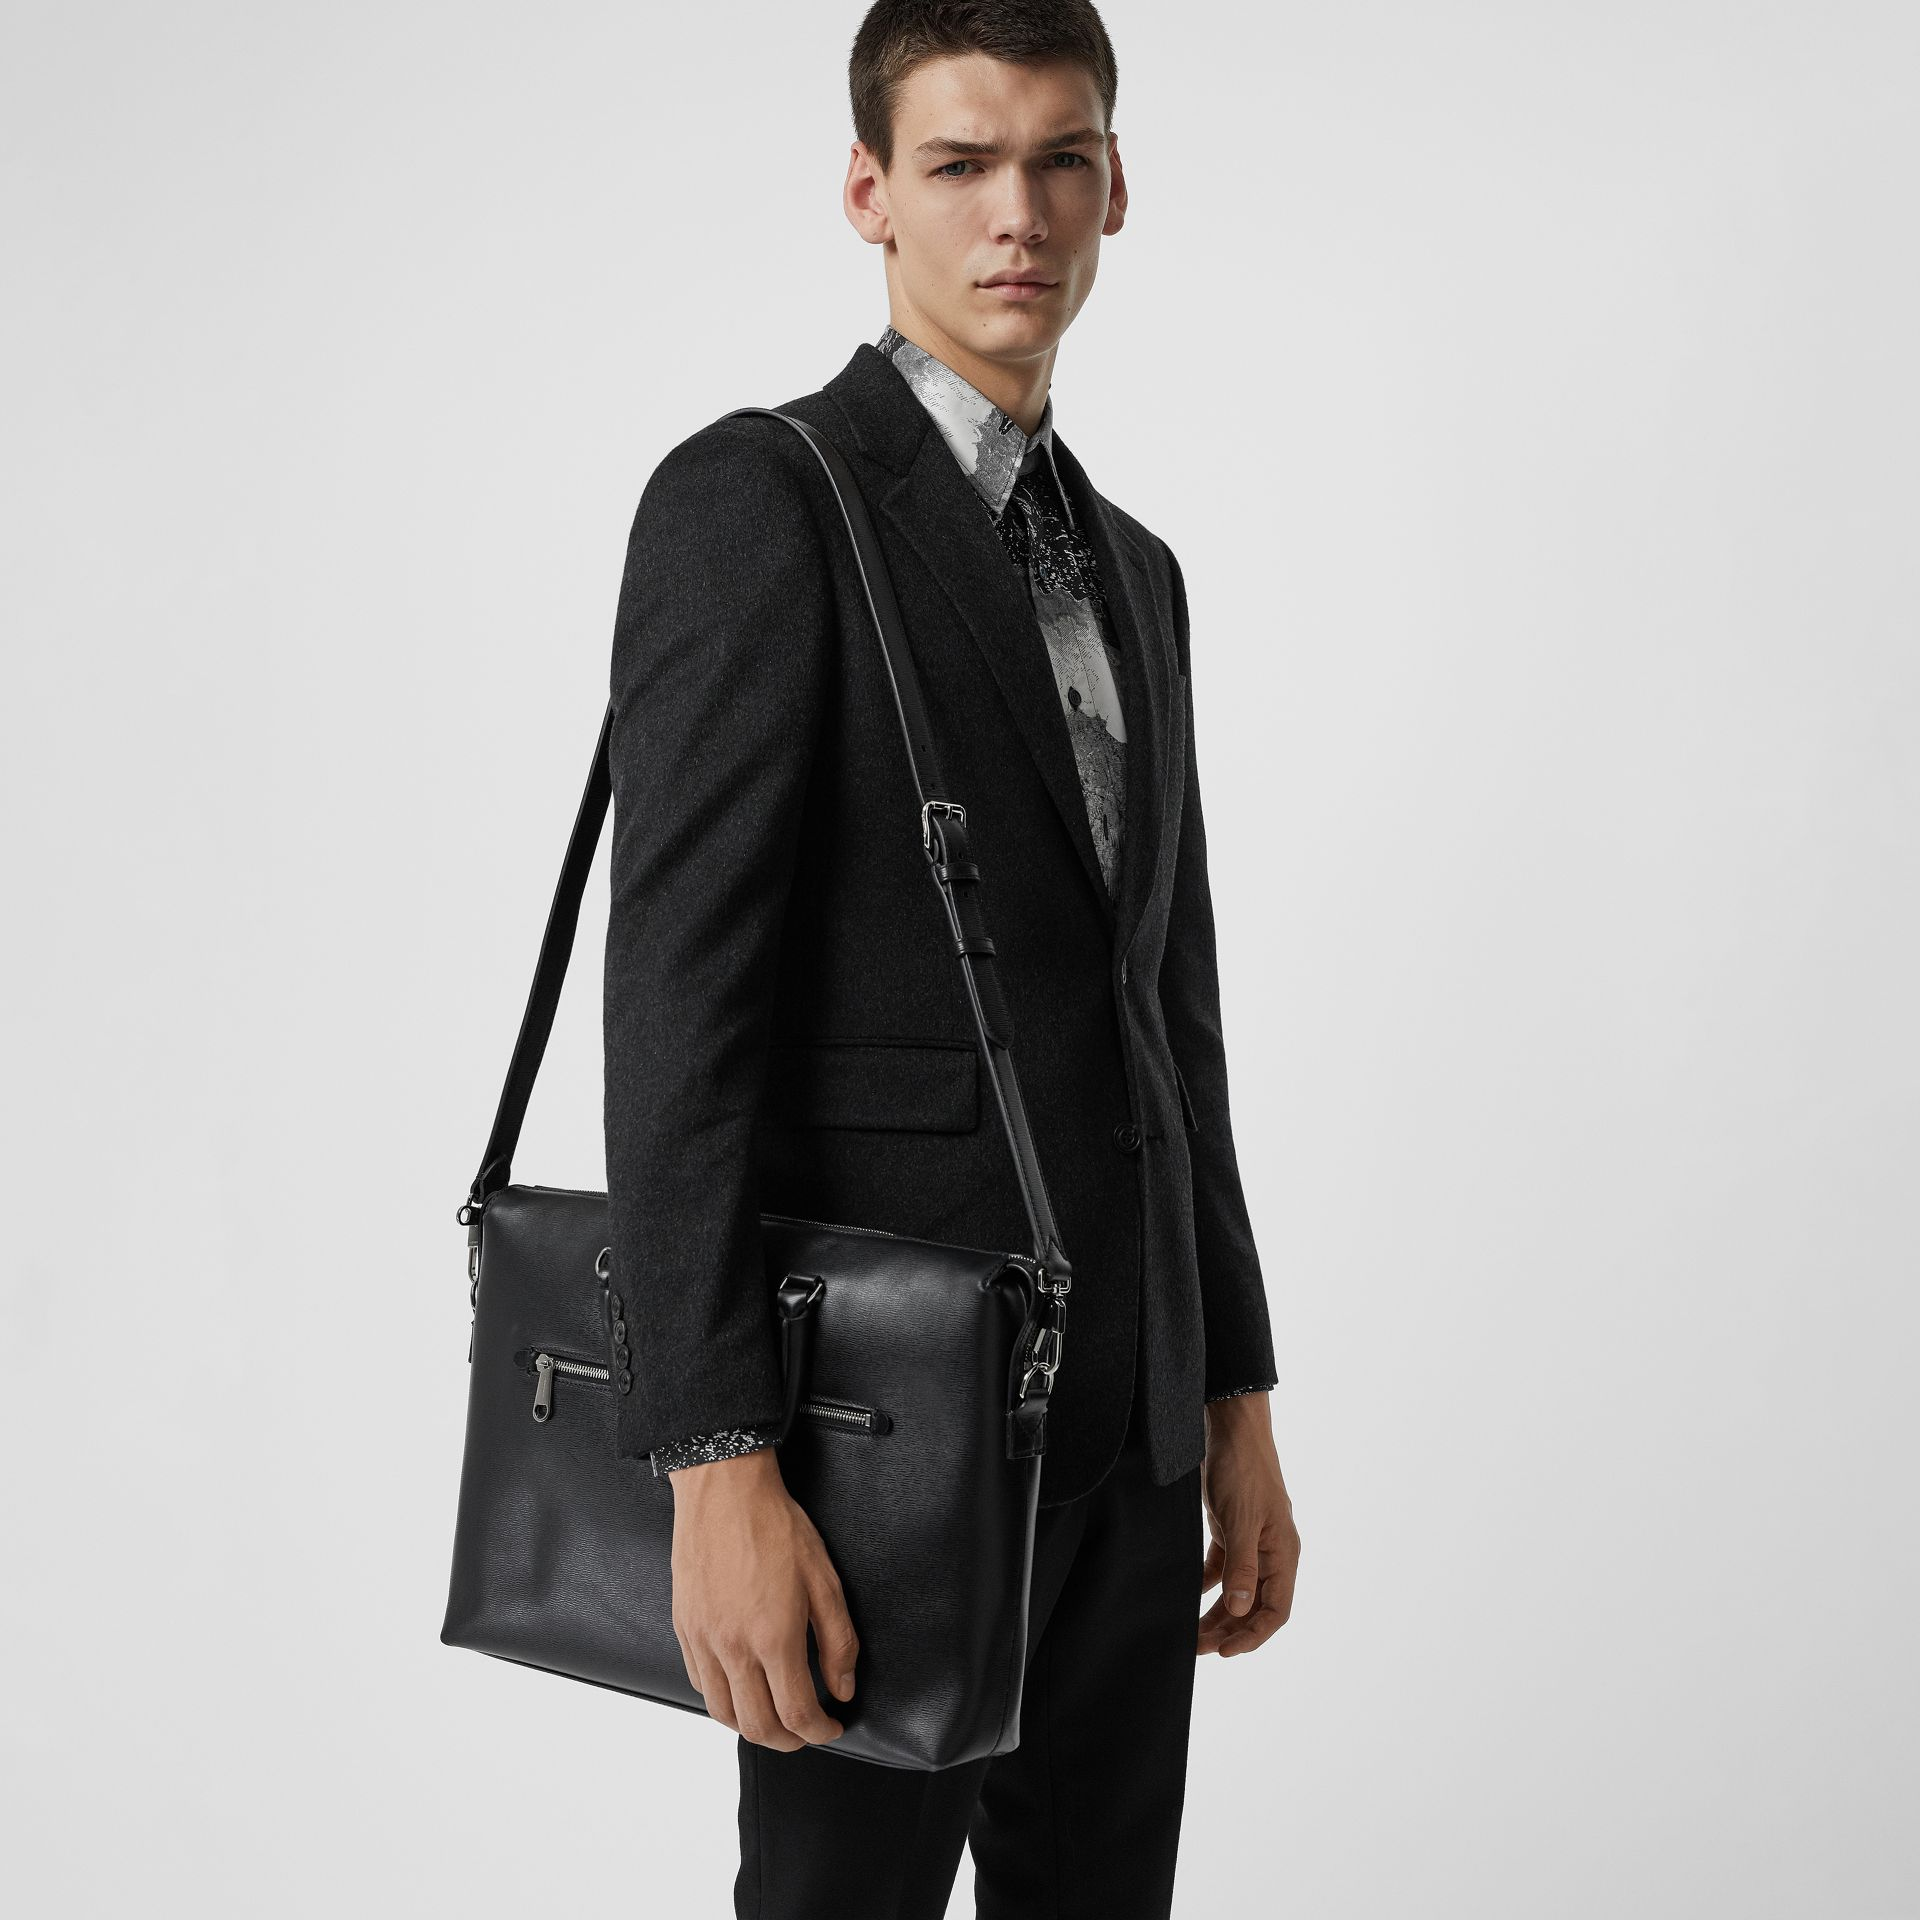 Large Textured Leather Briefcase in Black - Men | Burberry United Kingdom - gallery image 3